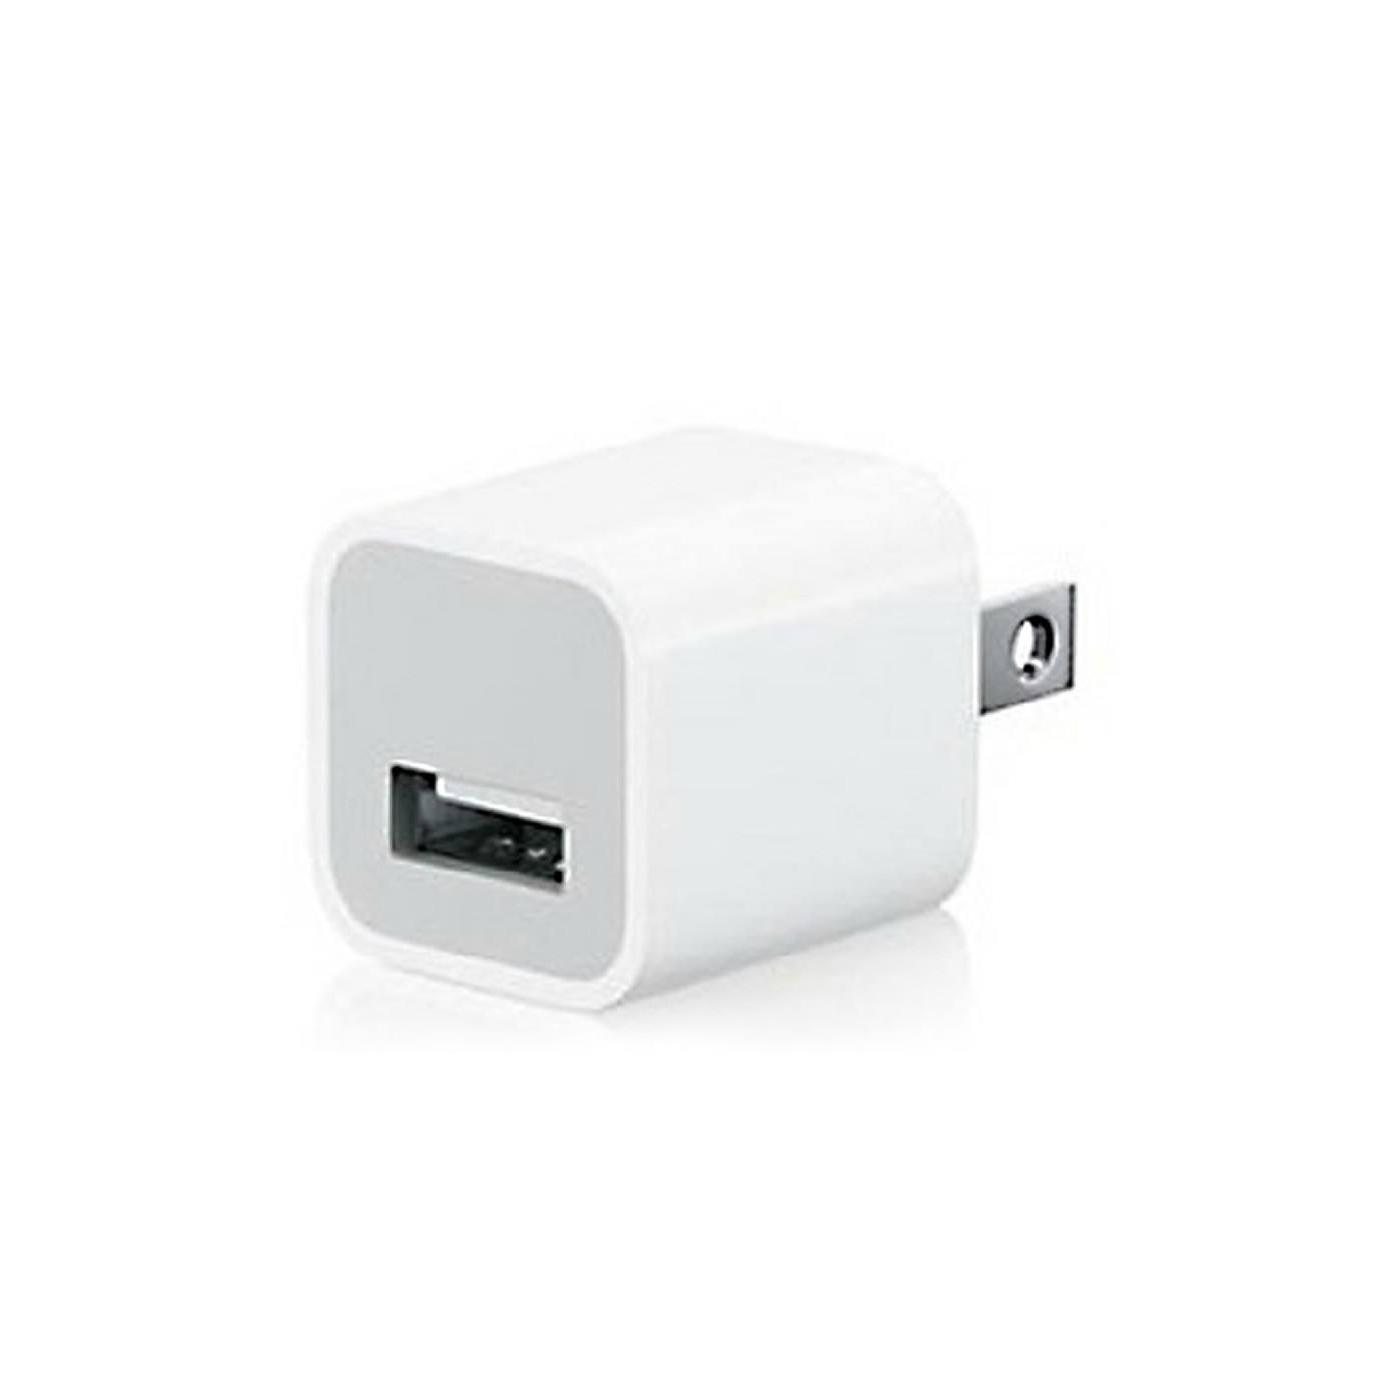 iphone charger length apple iphone usa charger specs large lots suppliers 11733